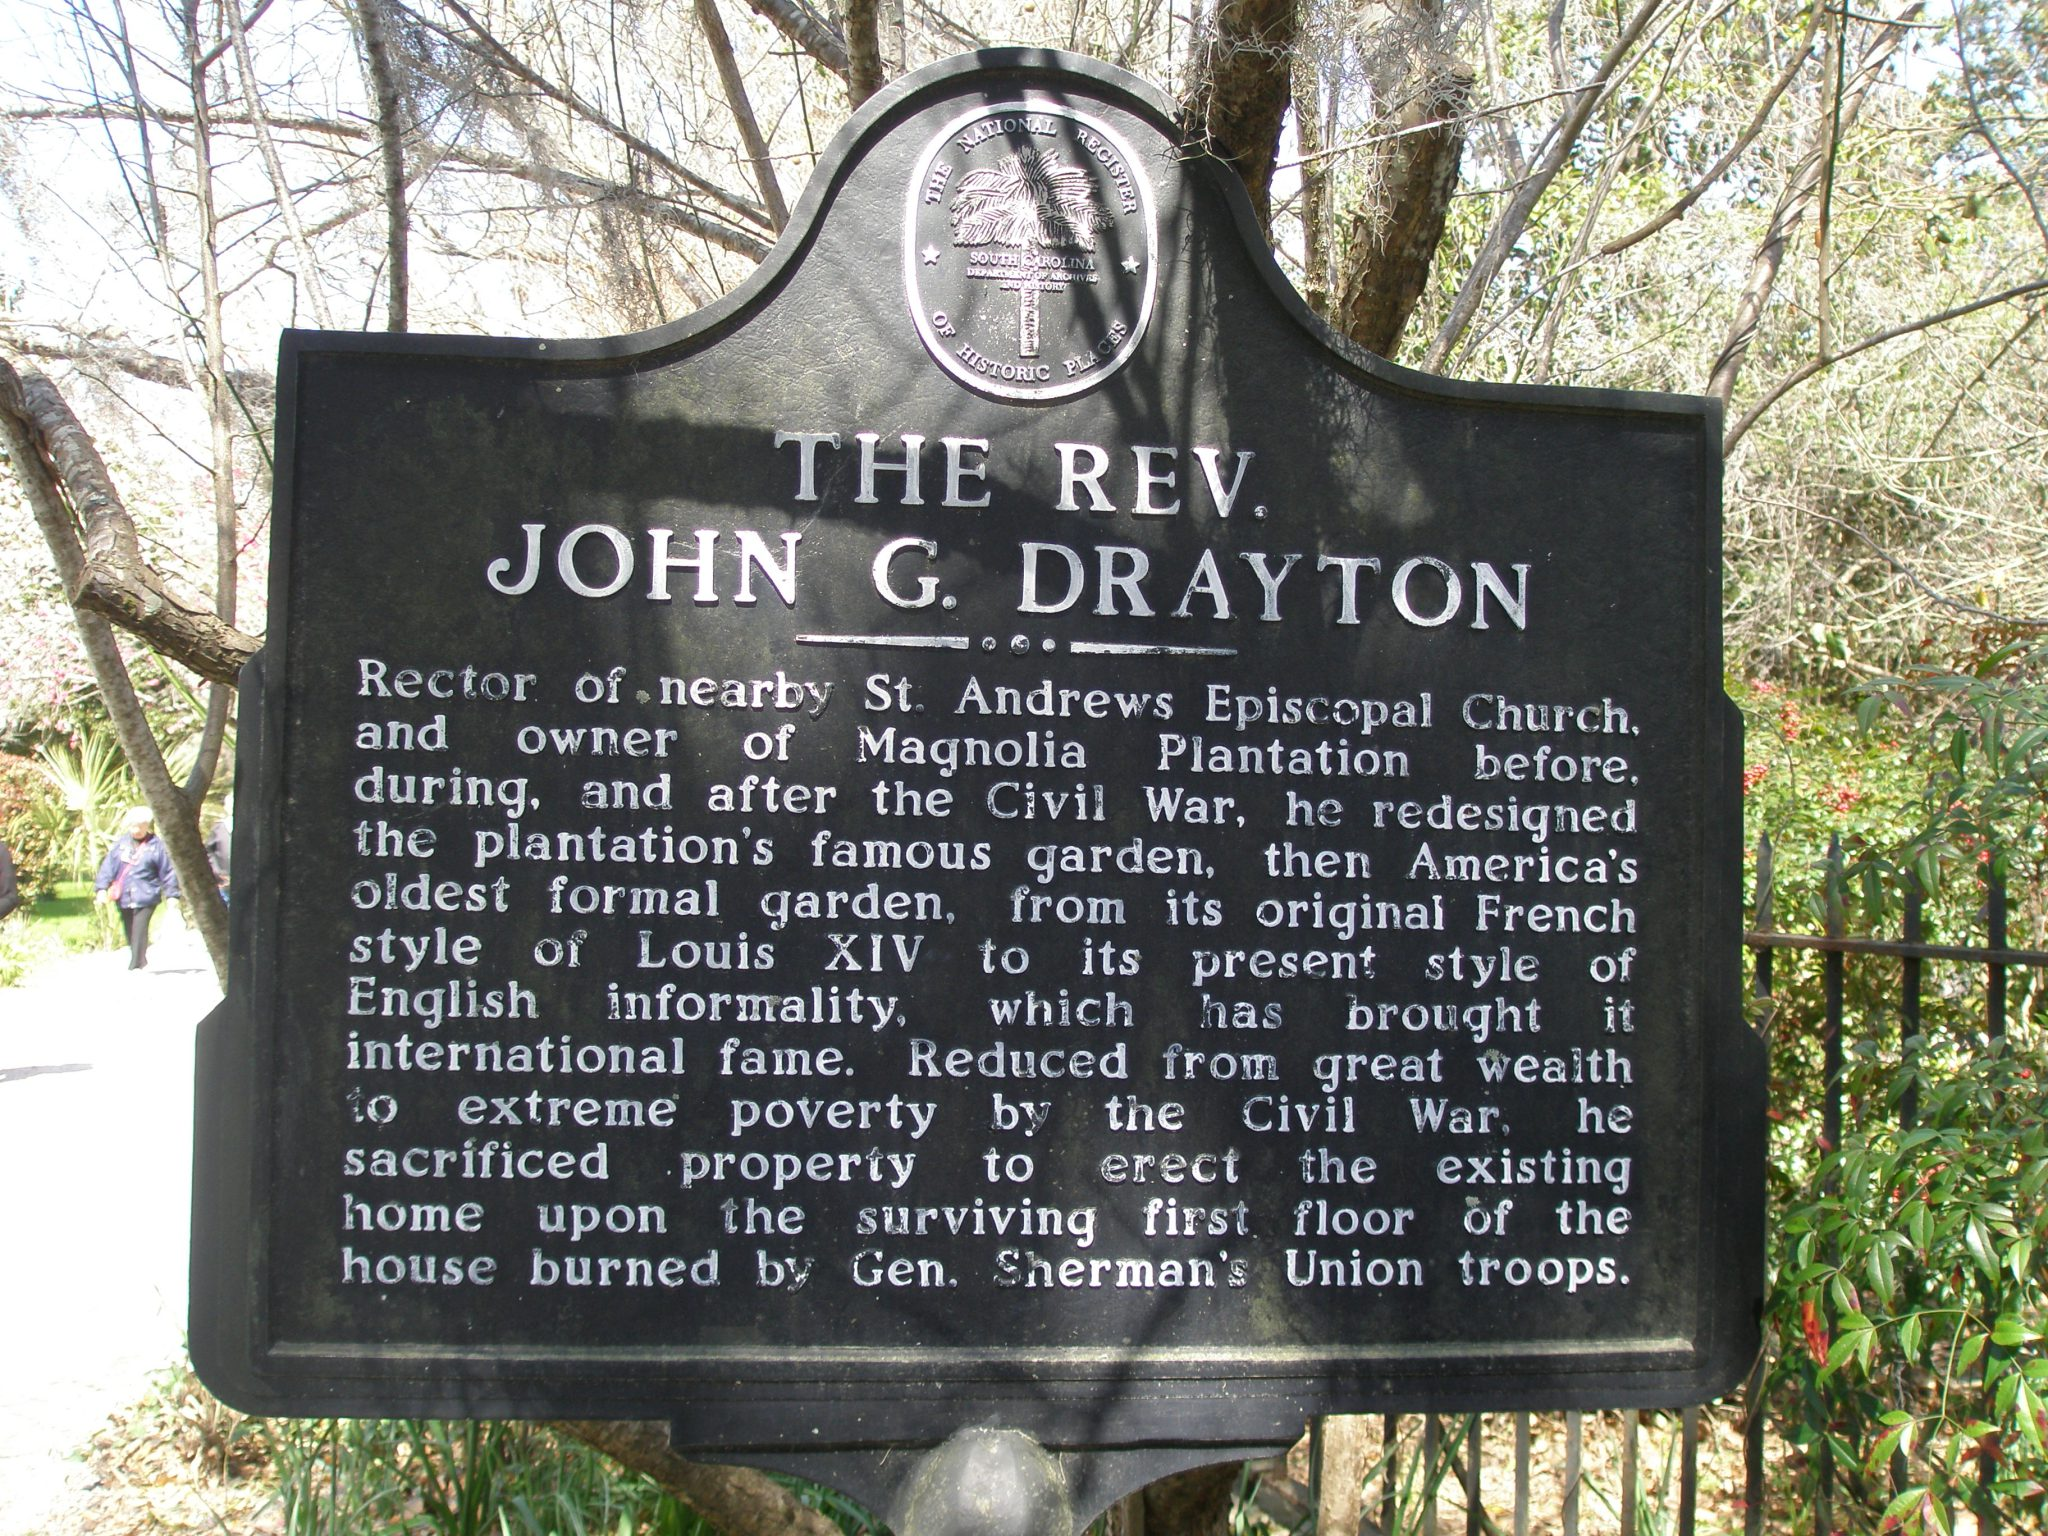 Plaque at entry to Magnolia Plantation & Gardens